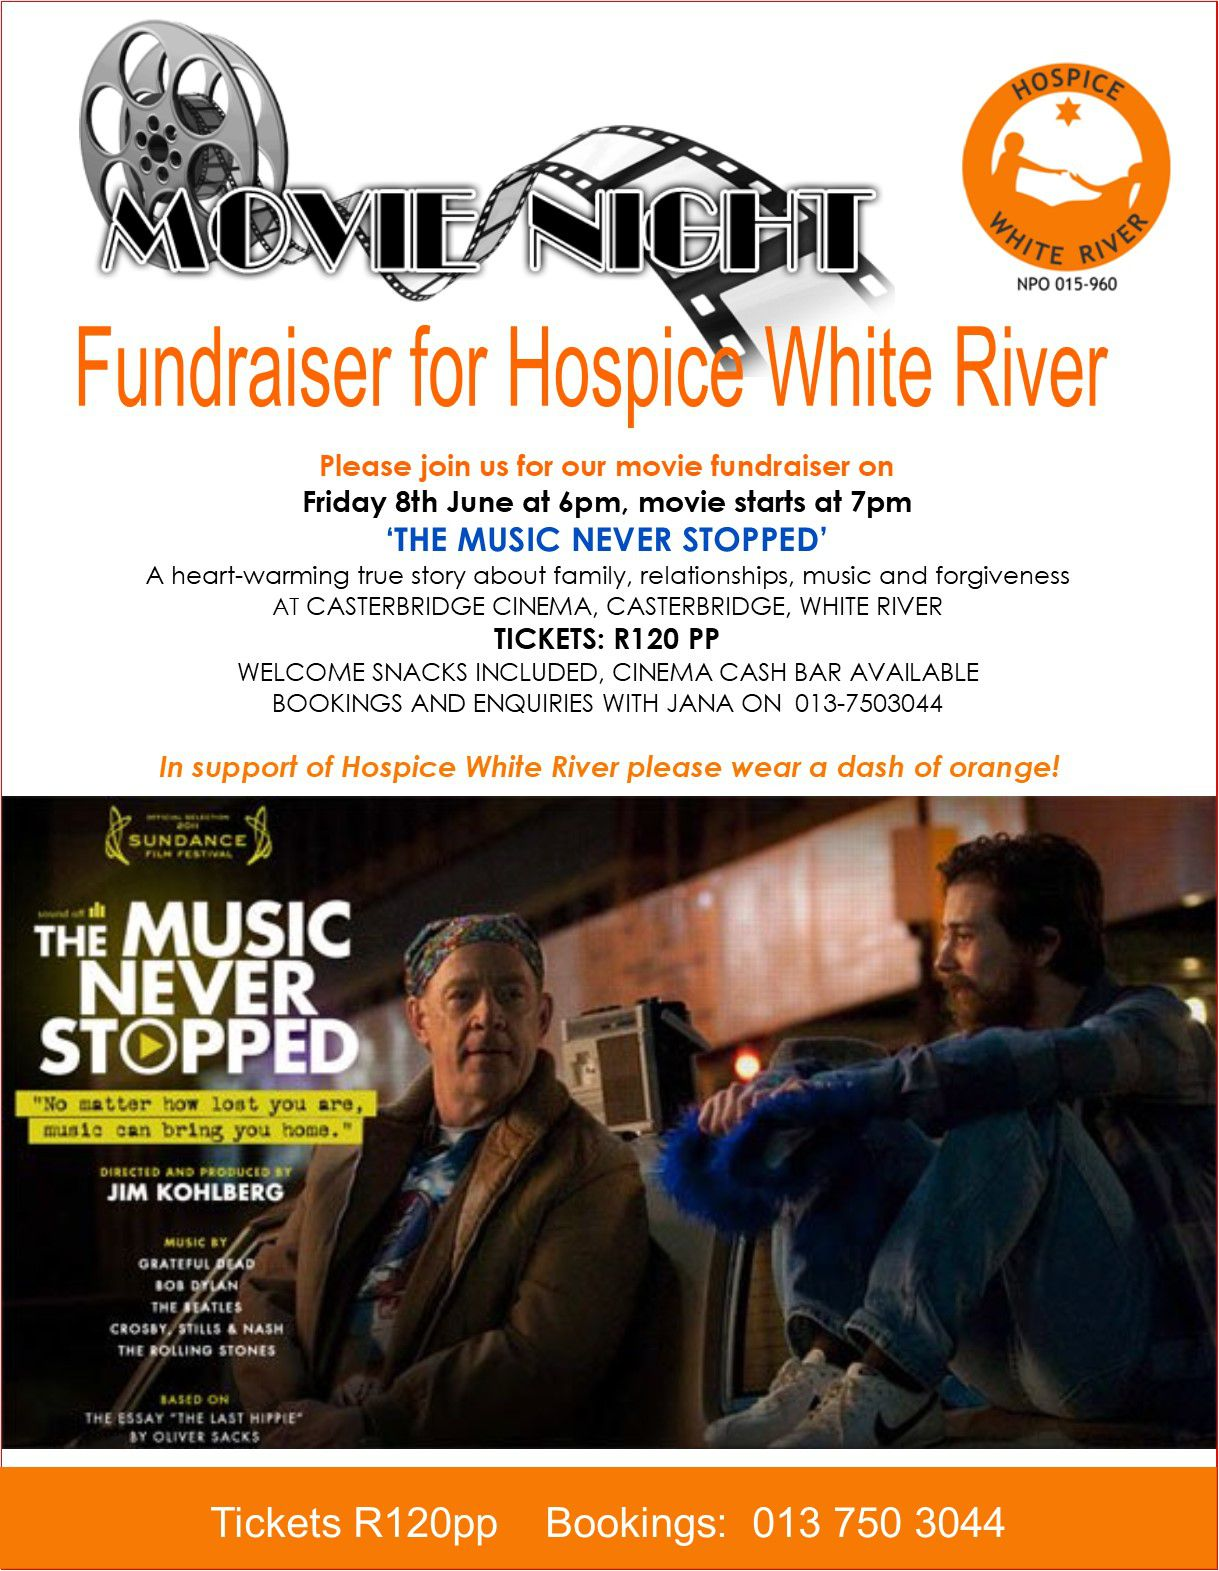 Hospice Movie Fundraiser - The Music Never Stopped @ Casterbridge Cinema